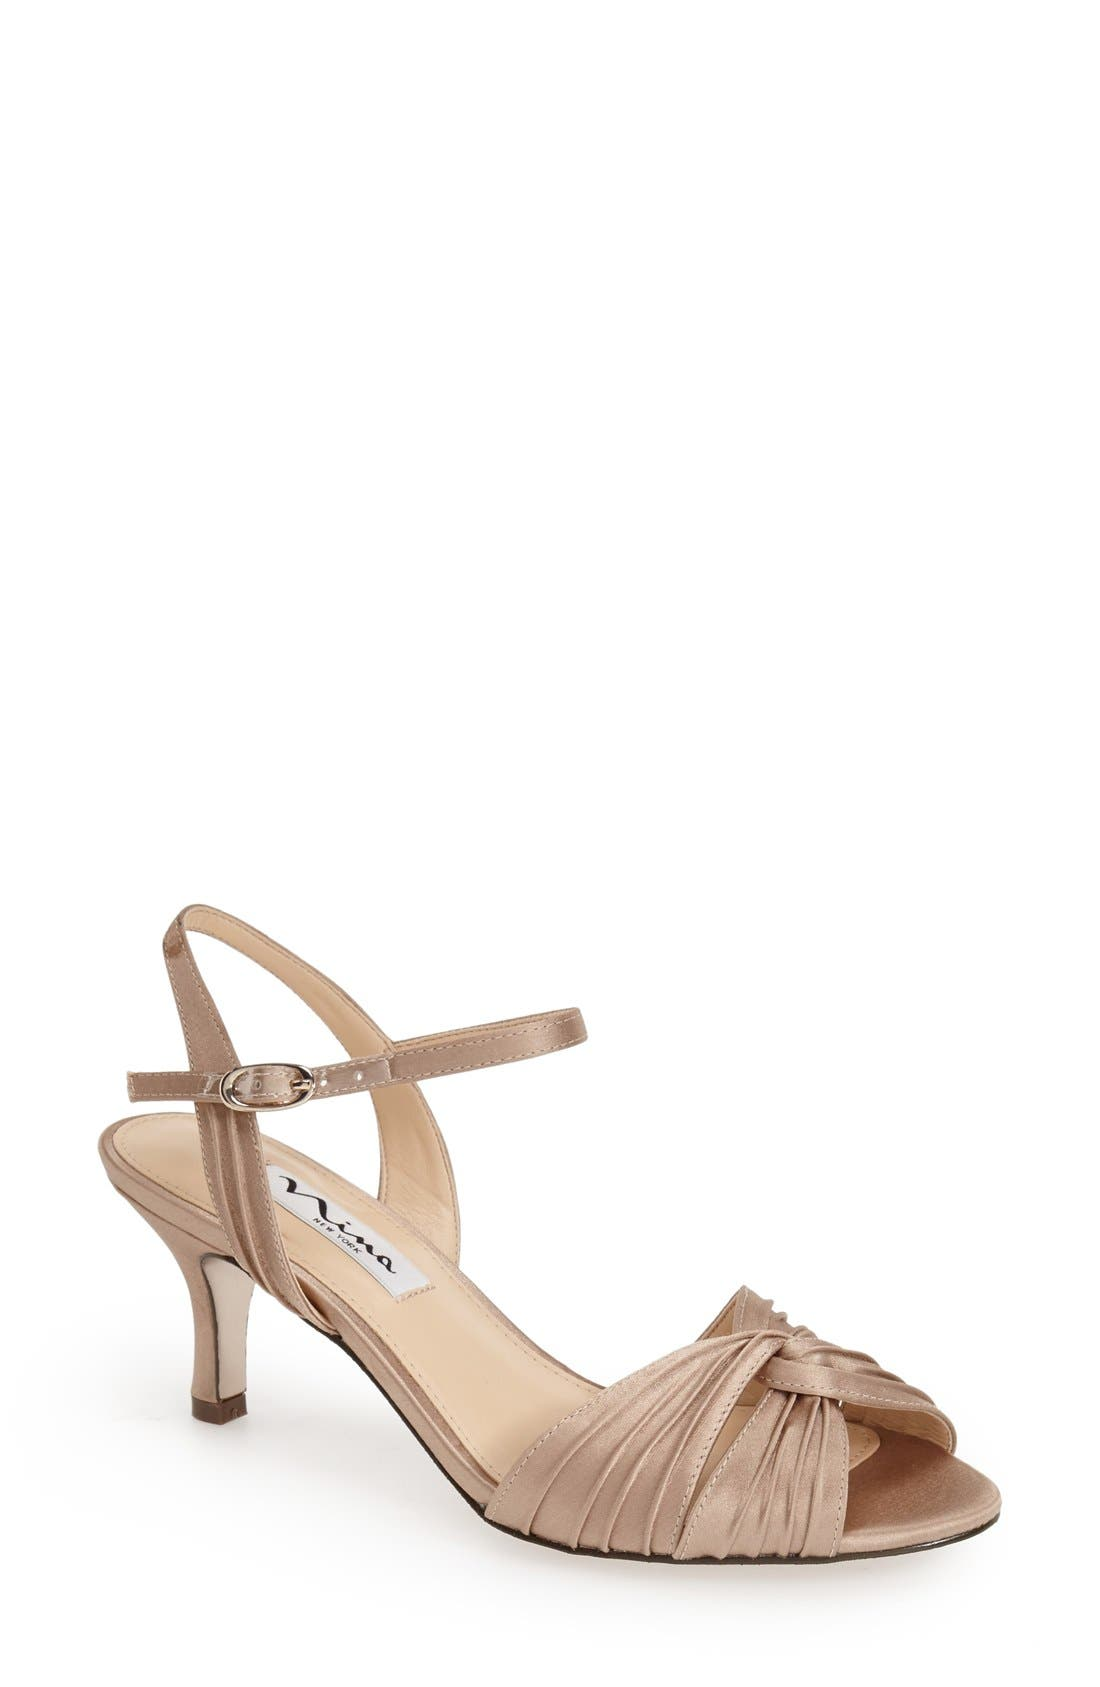 Alternate Image 1 Selected - Nina 'Camille' Pleated Sandal (Women)